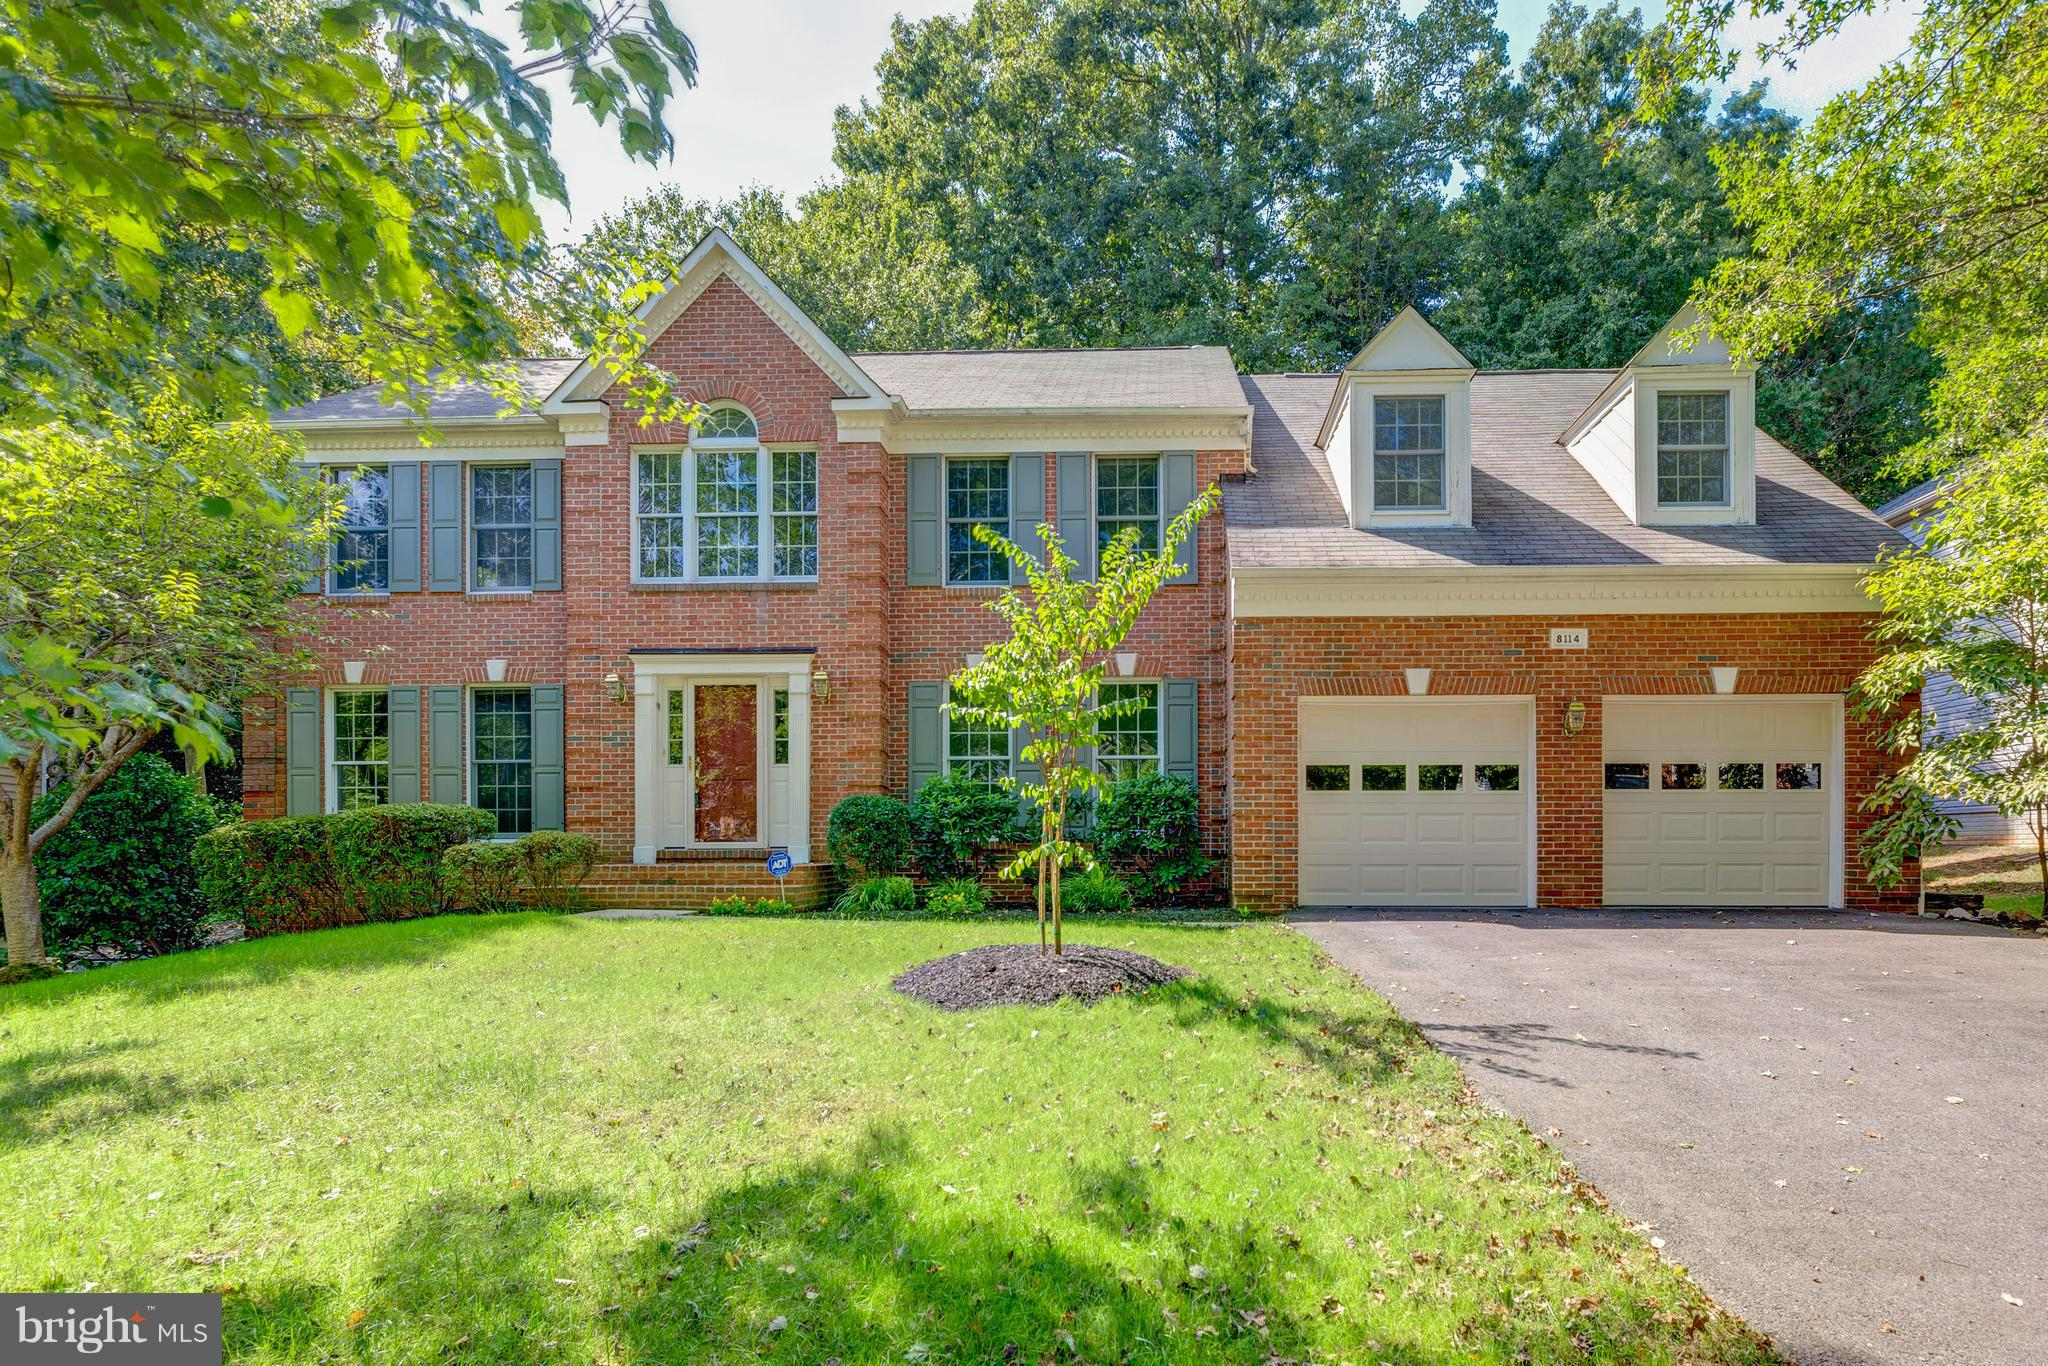 Motivated Seller! $5,000 Bonus W/ Ratified Contract! Picture perfect 5BR/3.5BA Colonial Home in coveted Barrington! Highlighted by manicured landscaping in a private cul-de-sac location.  Main Level Bedroom/Office Space!! A Must see in over 25K in recent upgrades! Main Level Bedroom/Office.  Over 4,000 SQ of space, 2 car garage. Newer HVAC Unit + Newer Water Heater, New look Cabinets, Brand New Hardwood Floors, Updated Master Bathroom + Updated Bathrooms, New light fixtures! Fresh Paint!! Full Walk-up Basement w/ full Bathroom fully finished with multiple rooms! Spacious Deck & Quite/Peaceful